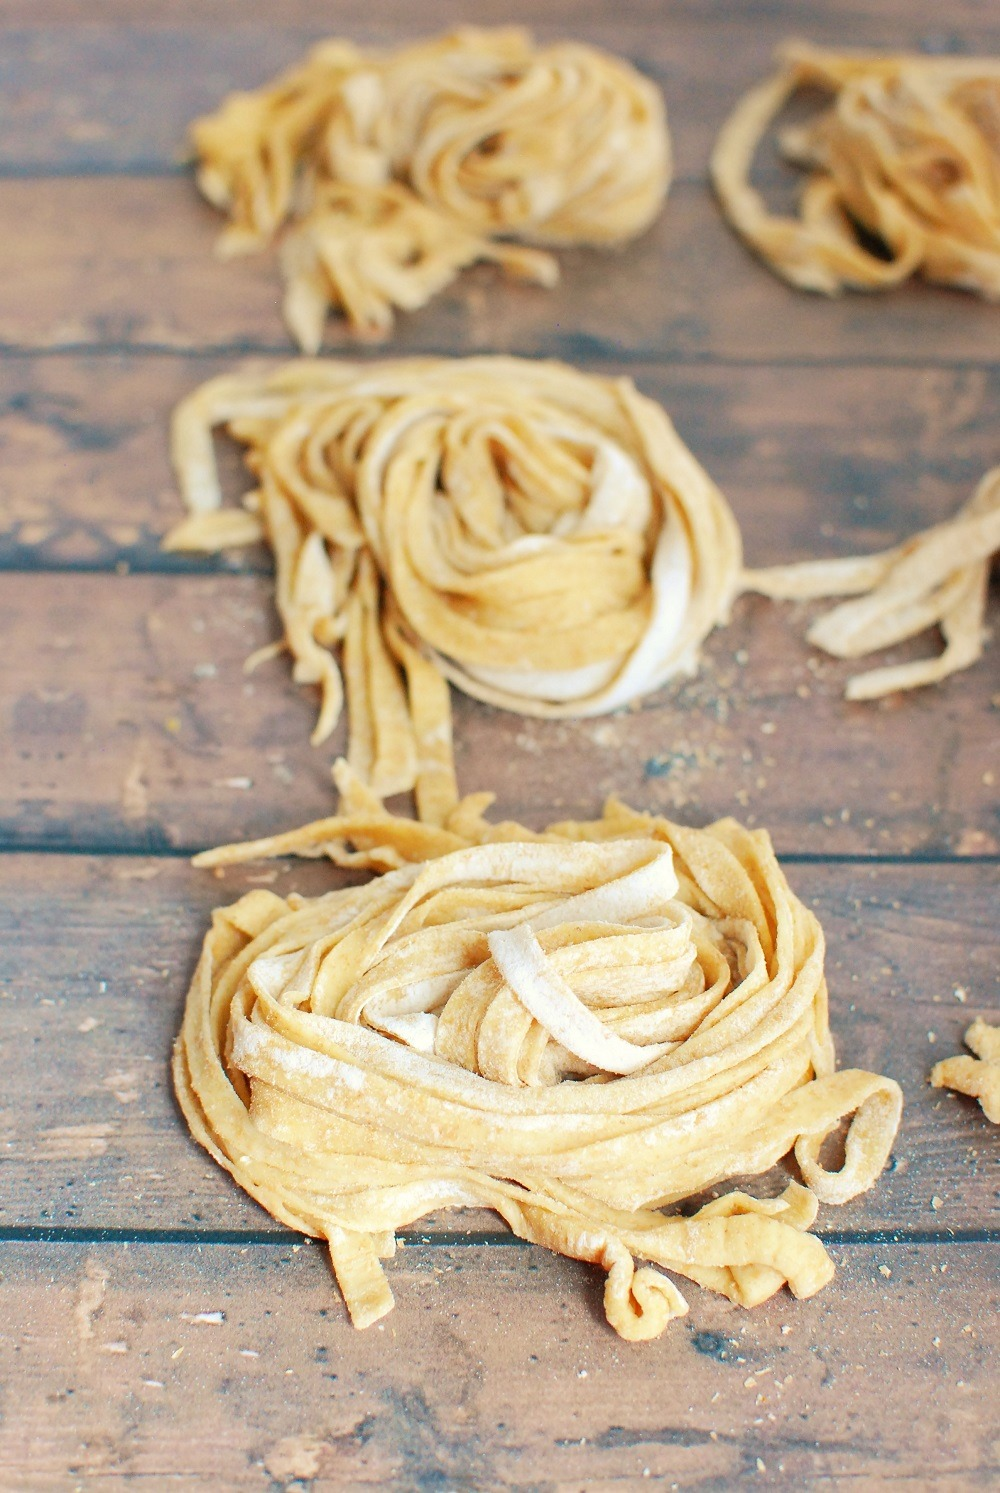 Sourdough pasta from snacking in sneakers